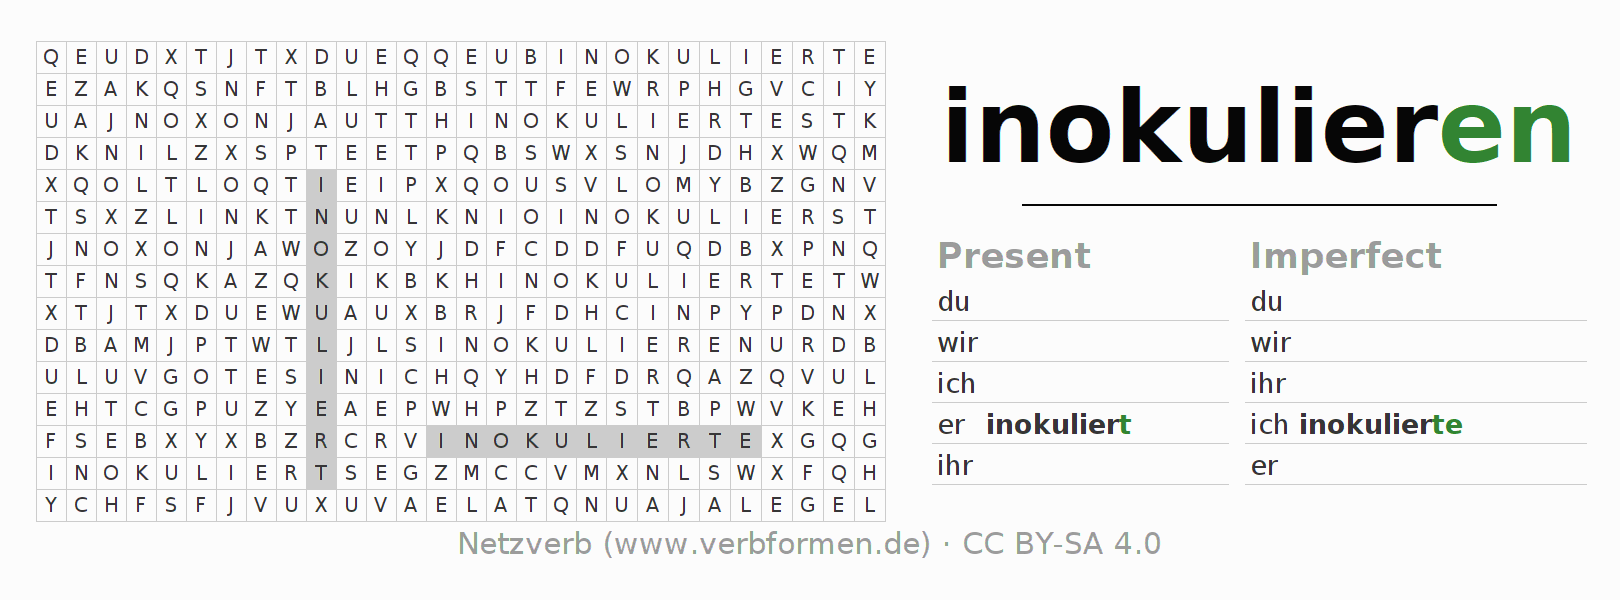 Word search puzzle for the conjugation of the verb inokulieren